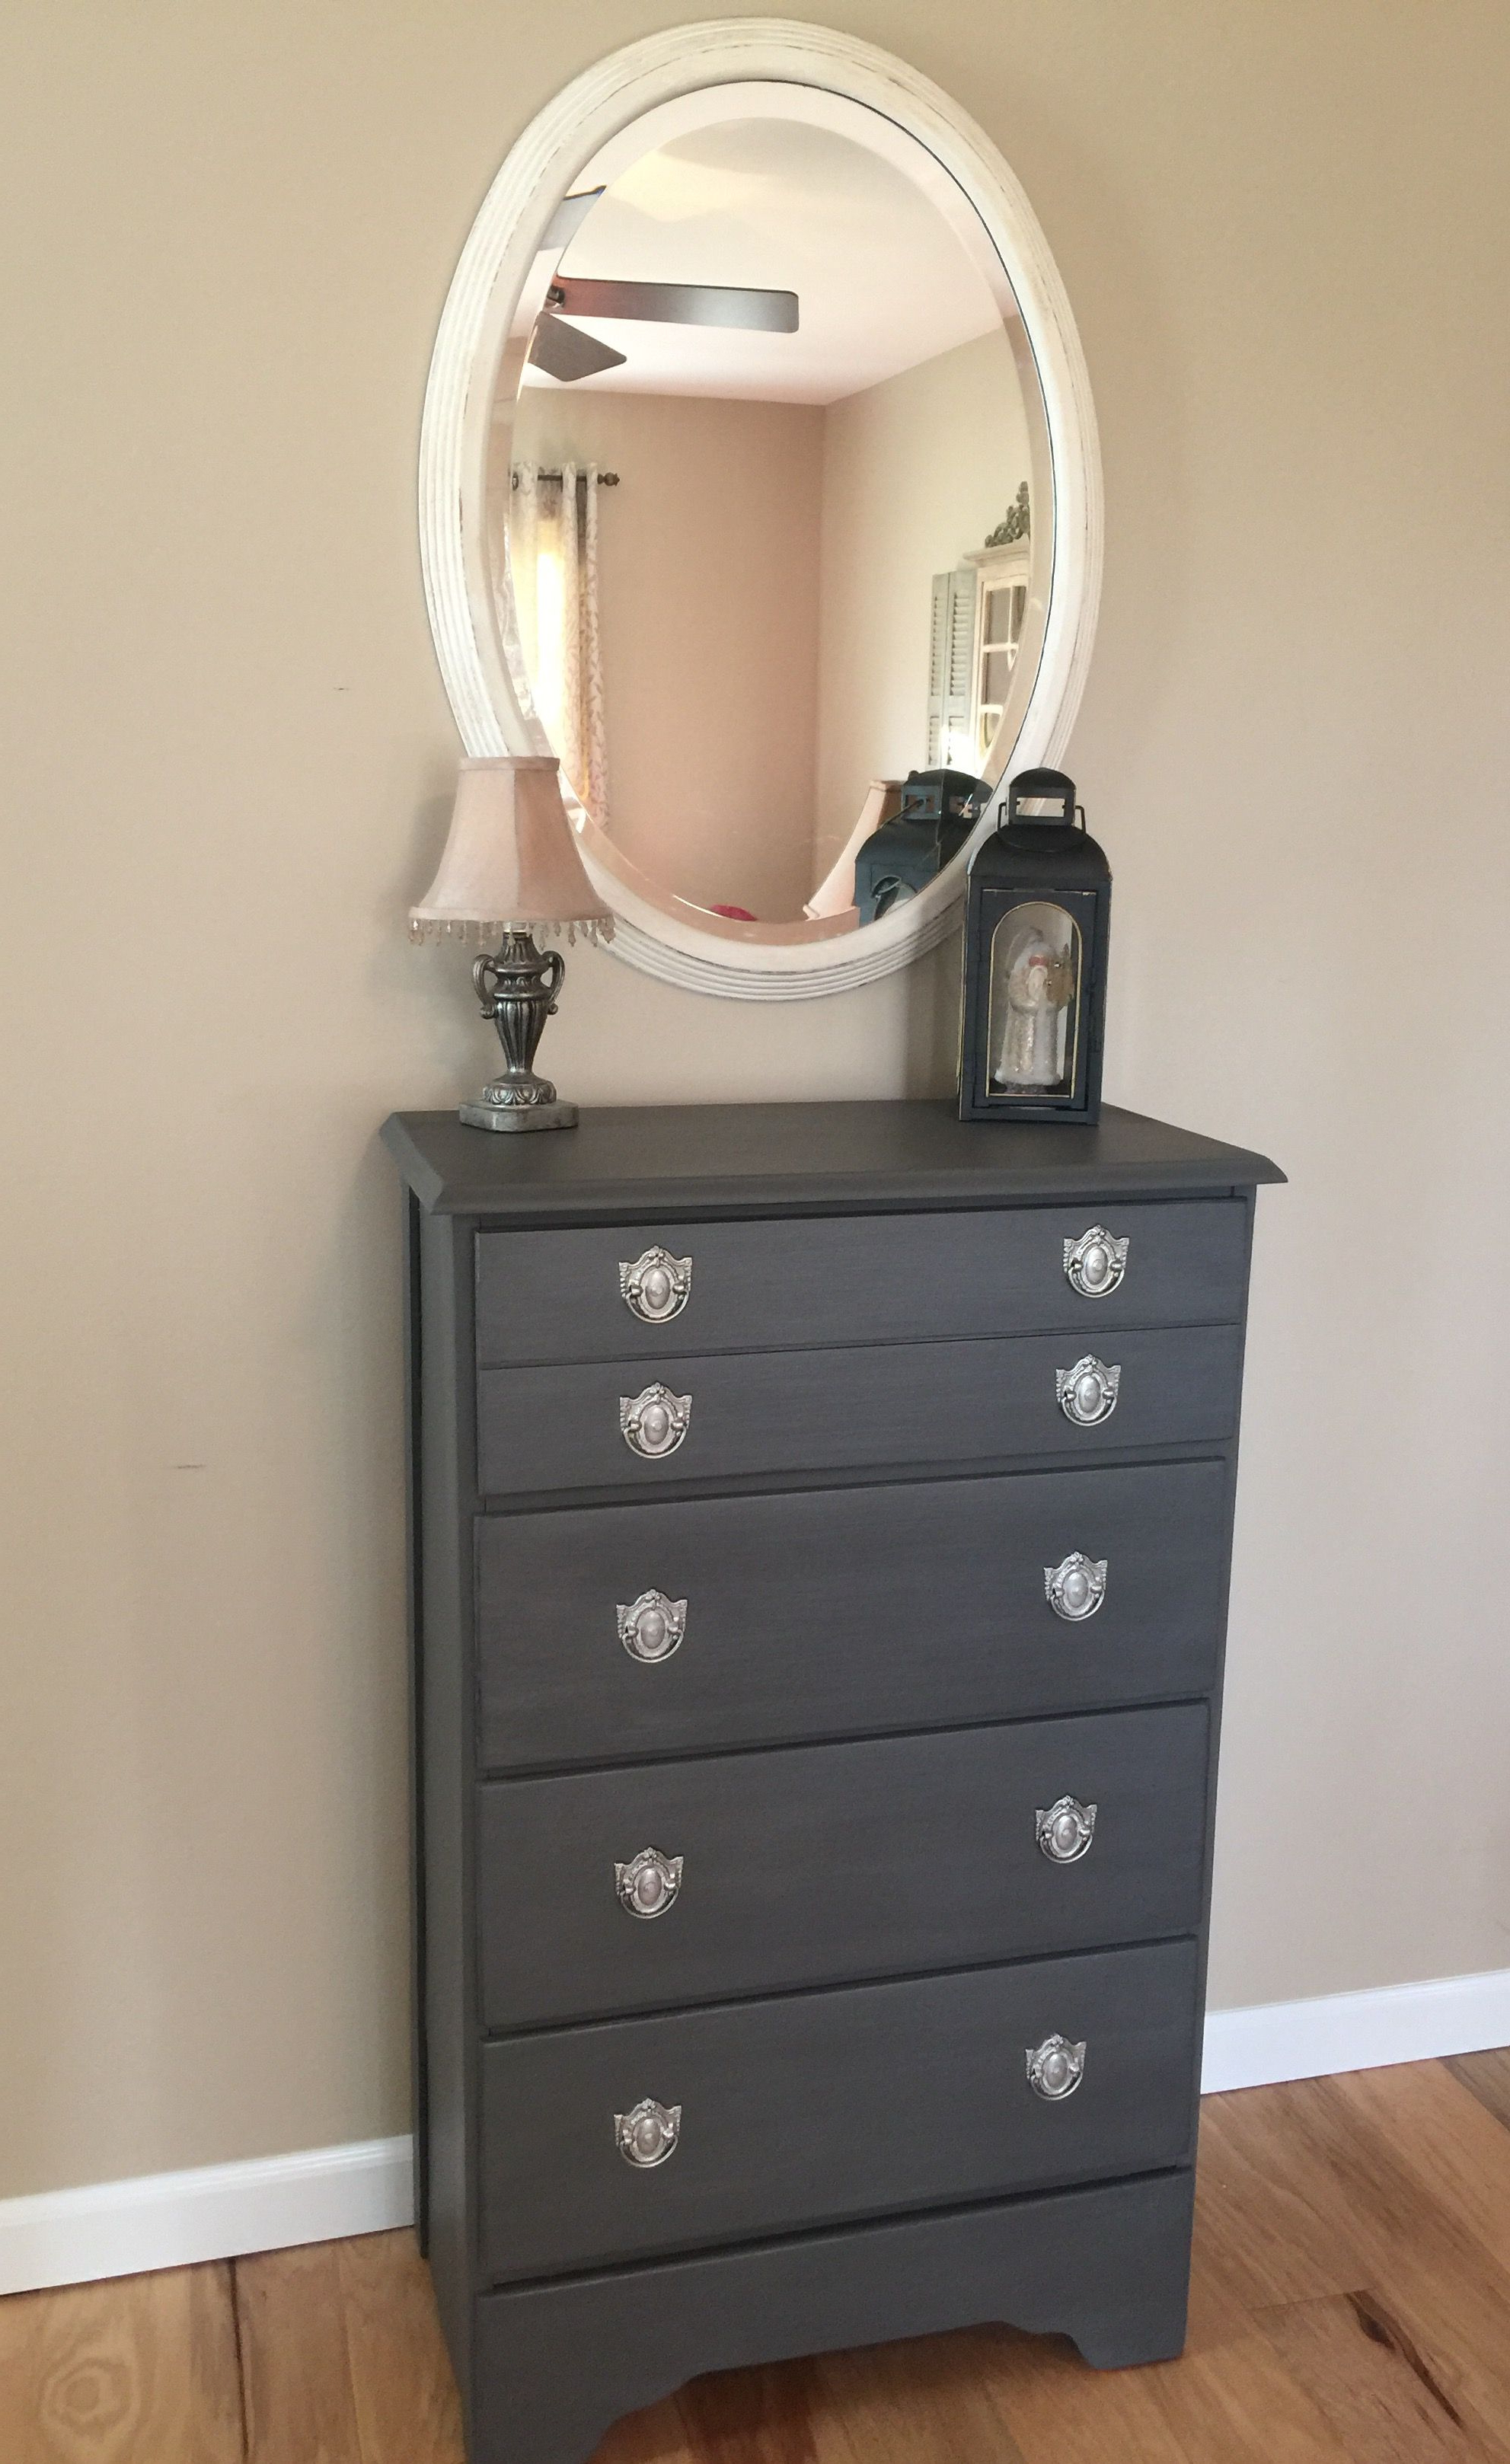 Such A Darling Makeover! This Was Redone In Waverly Elephant Within Elephant Damask Paloma Credenzas (View 20 of 20)